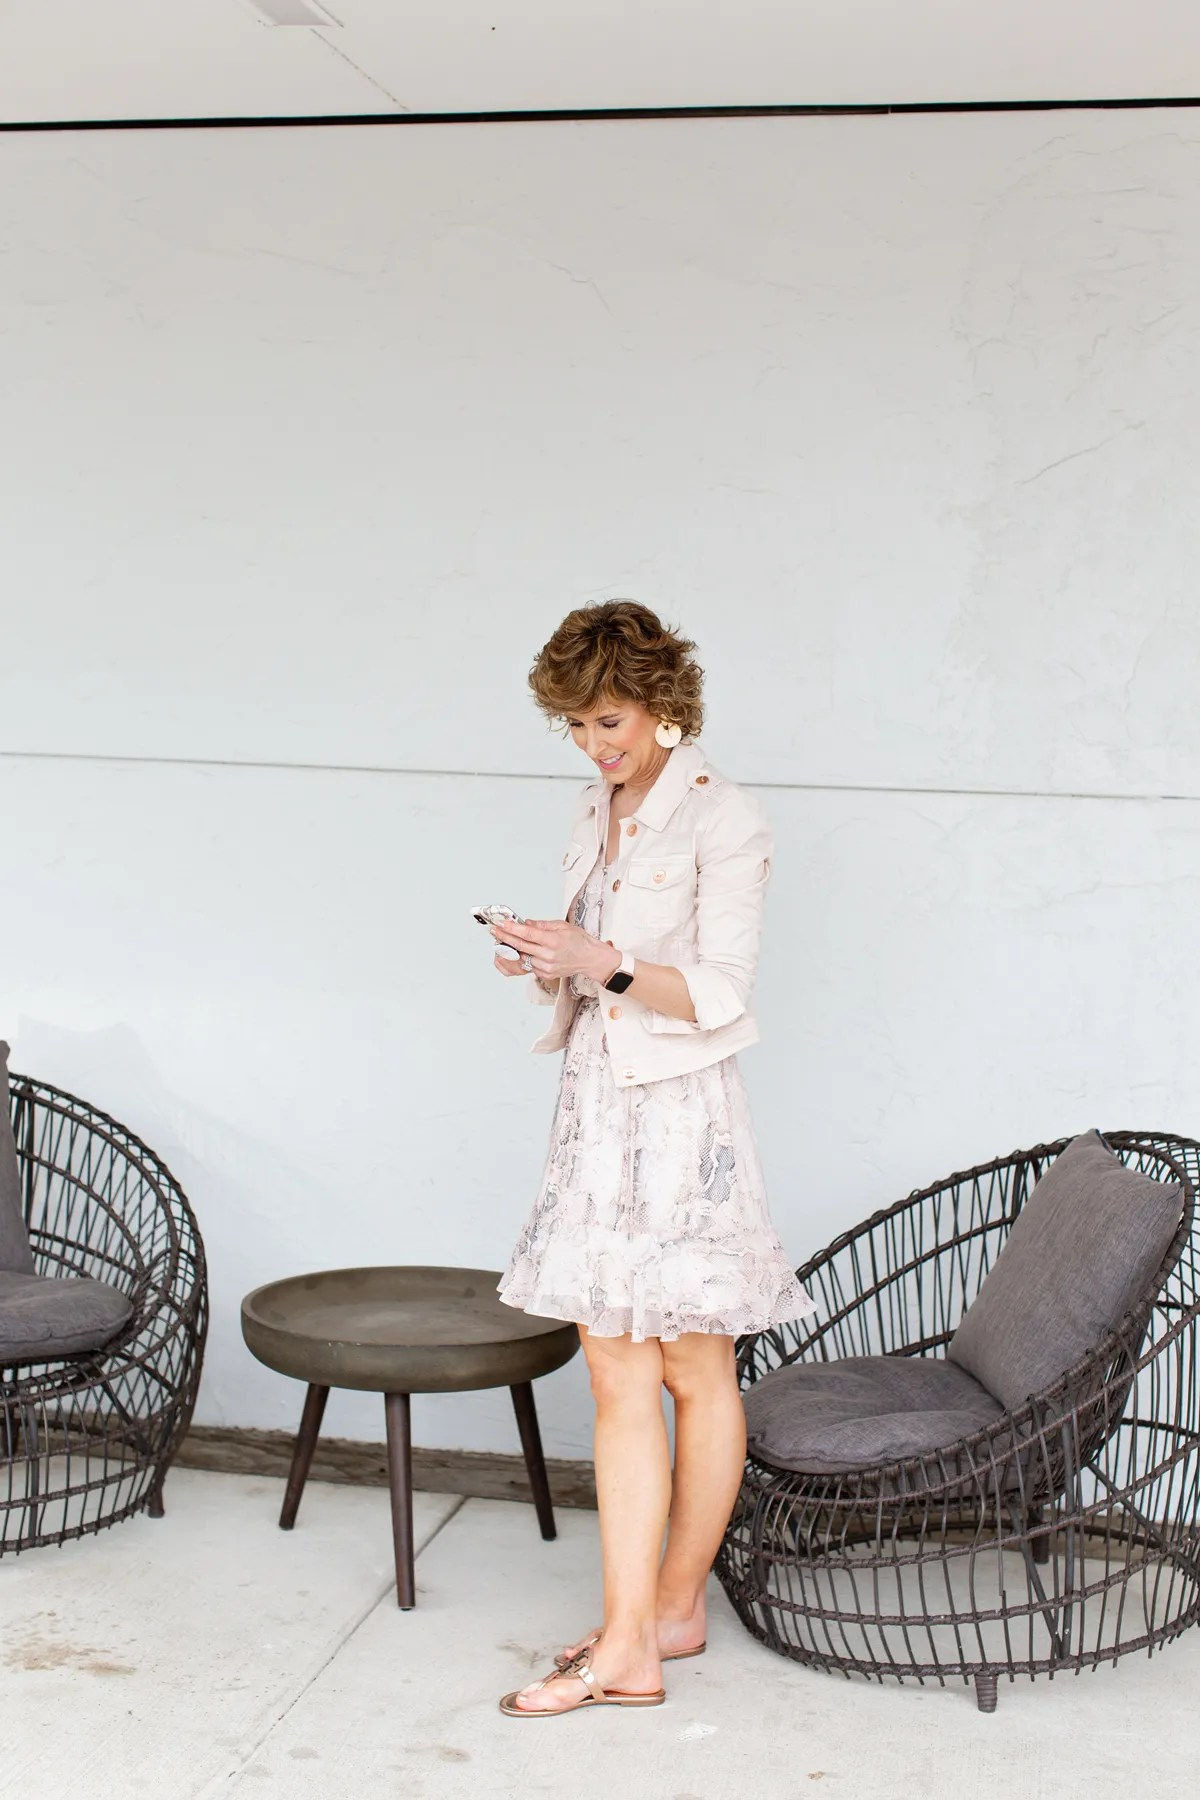 woman wearing blush jacket holding her phone and looking at phone